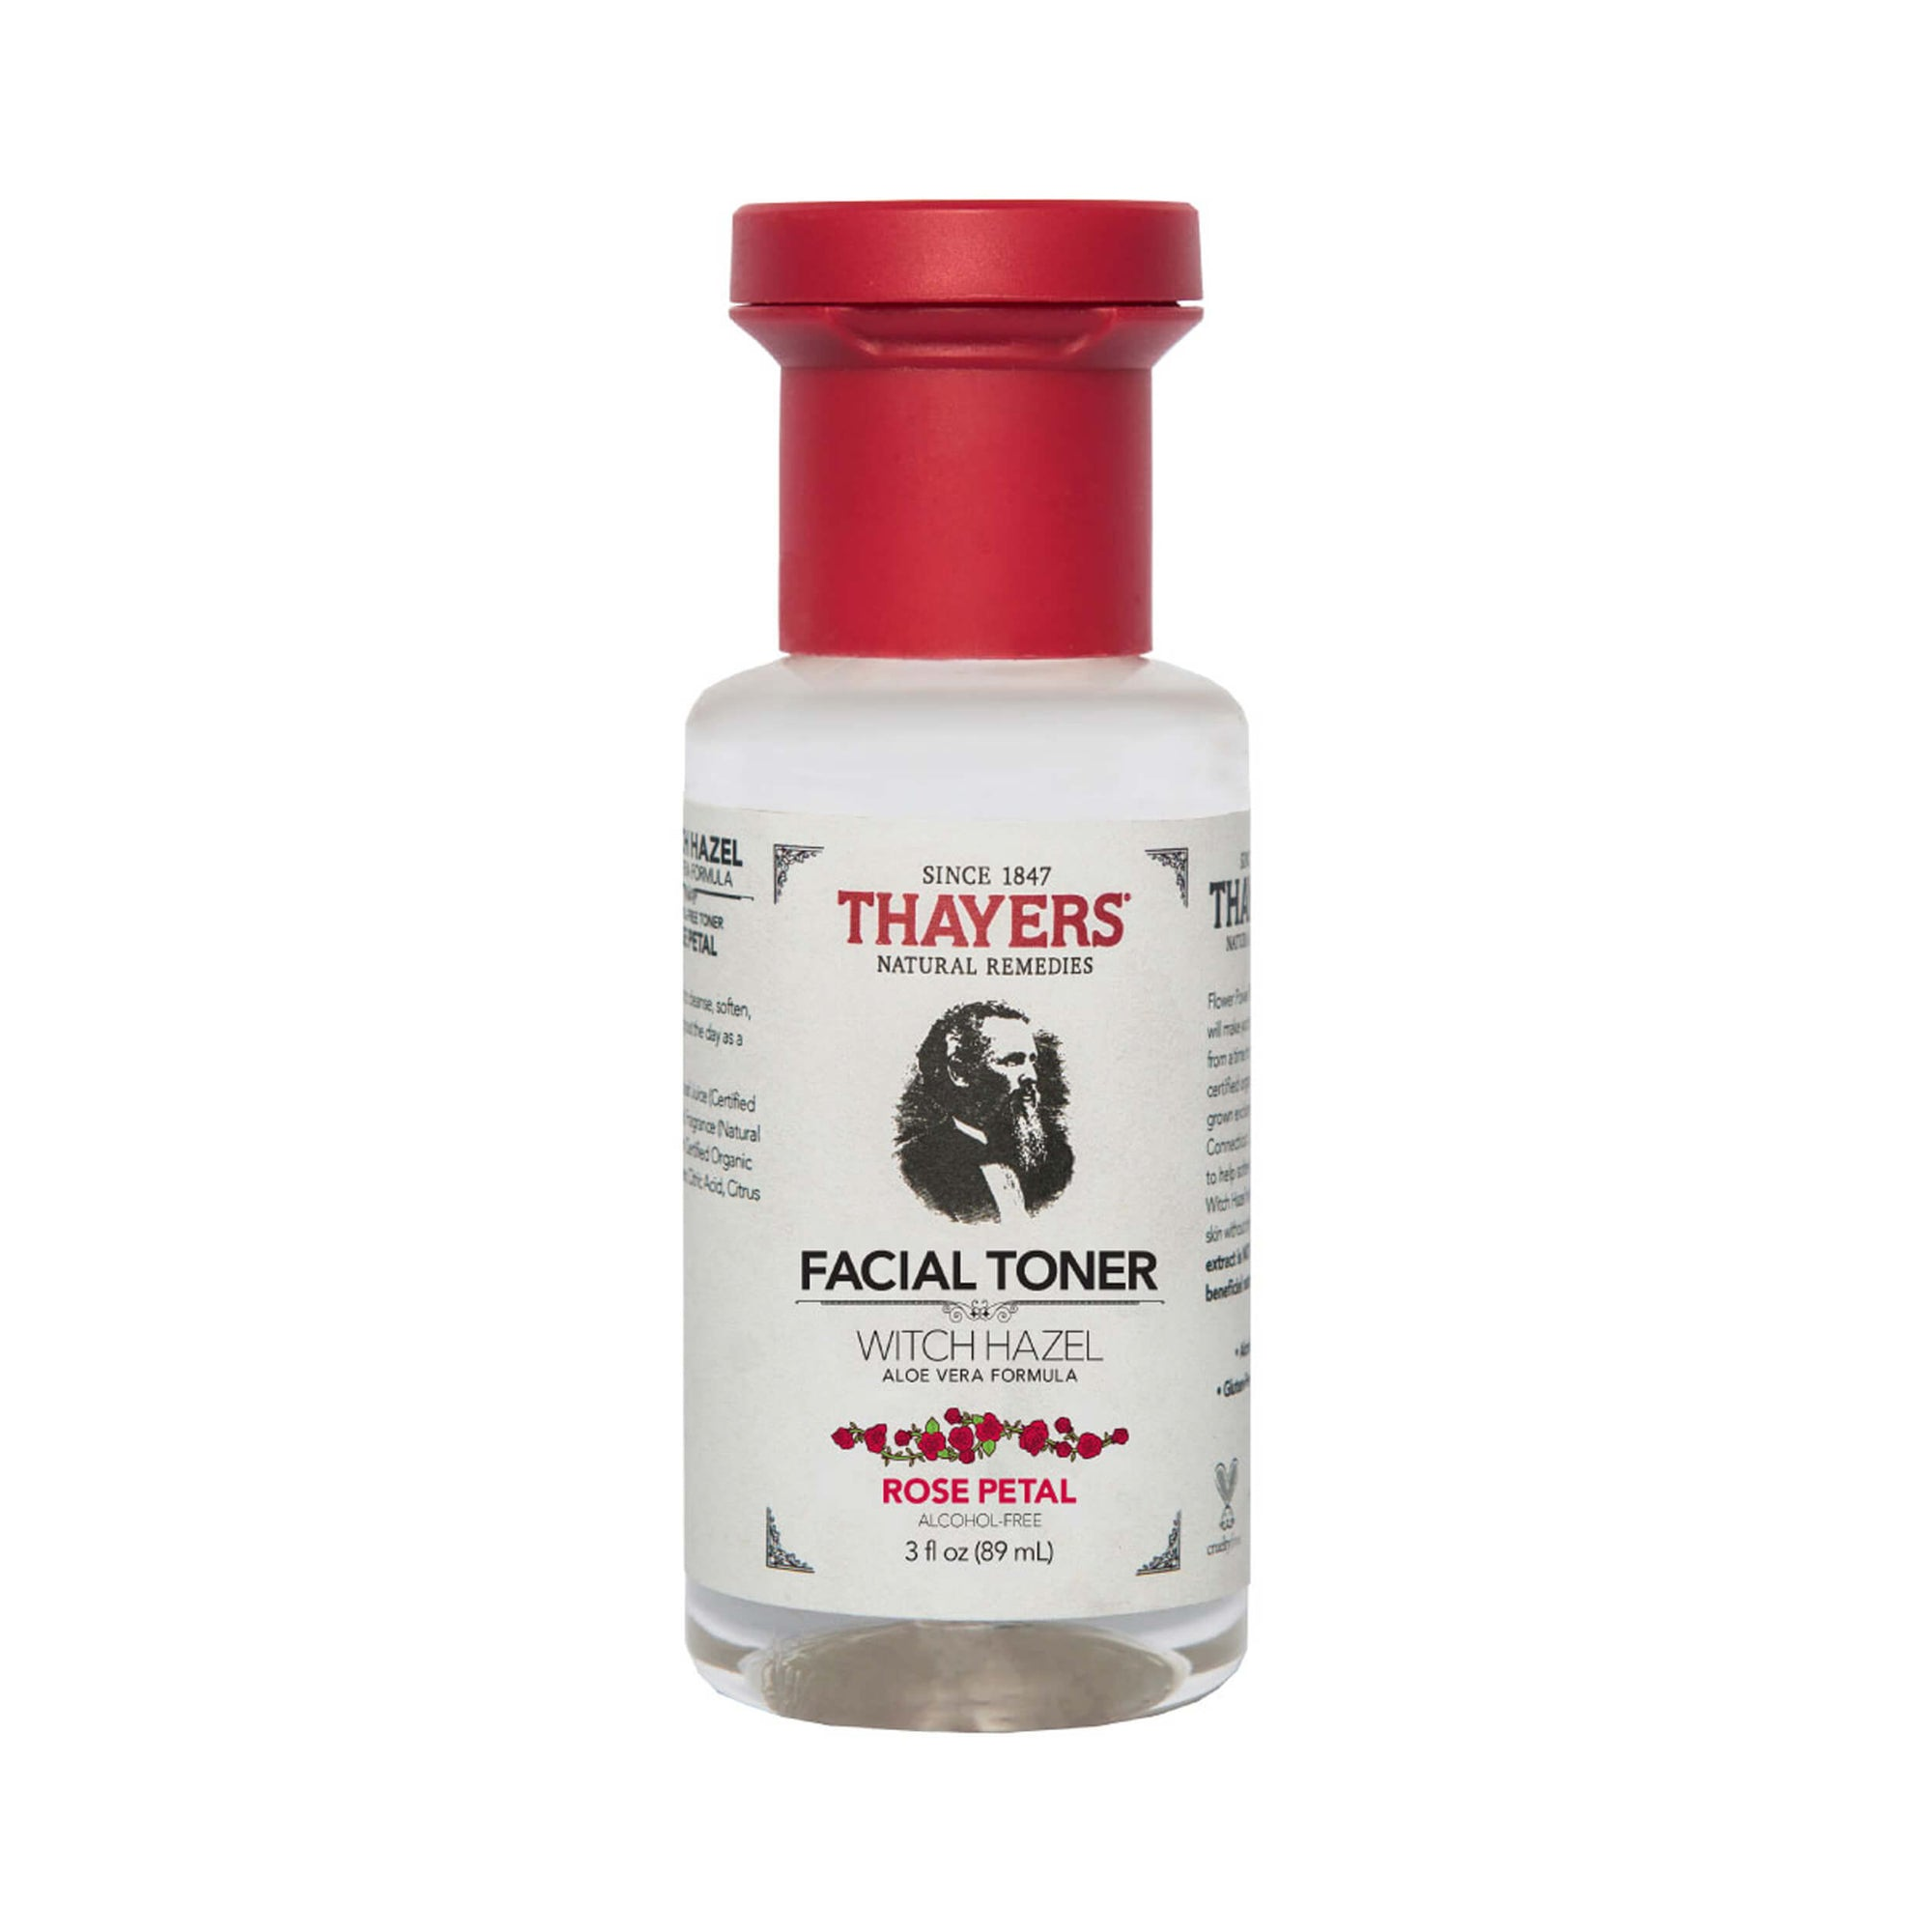 Thayers Alcohol-Free Rose Petal Witch Hazel Facial Toner Trial Size 89ml